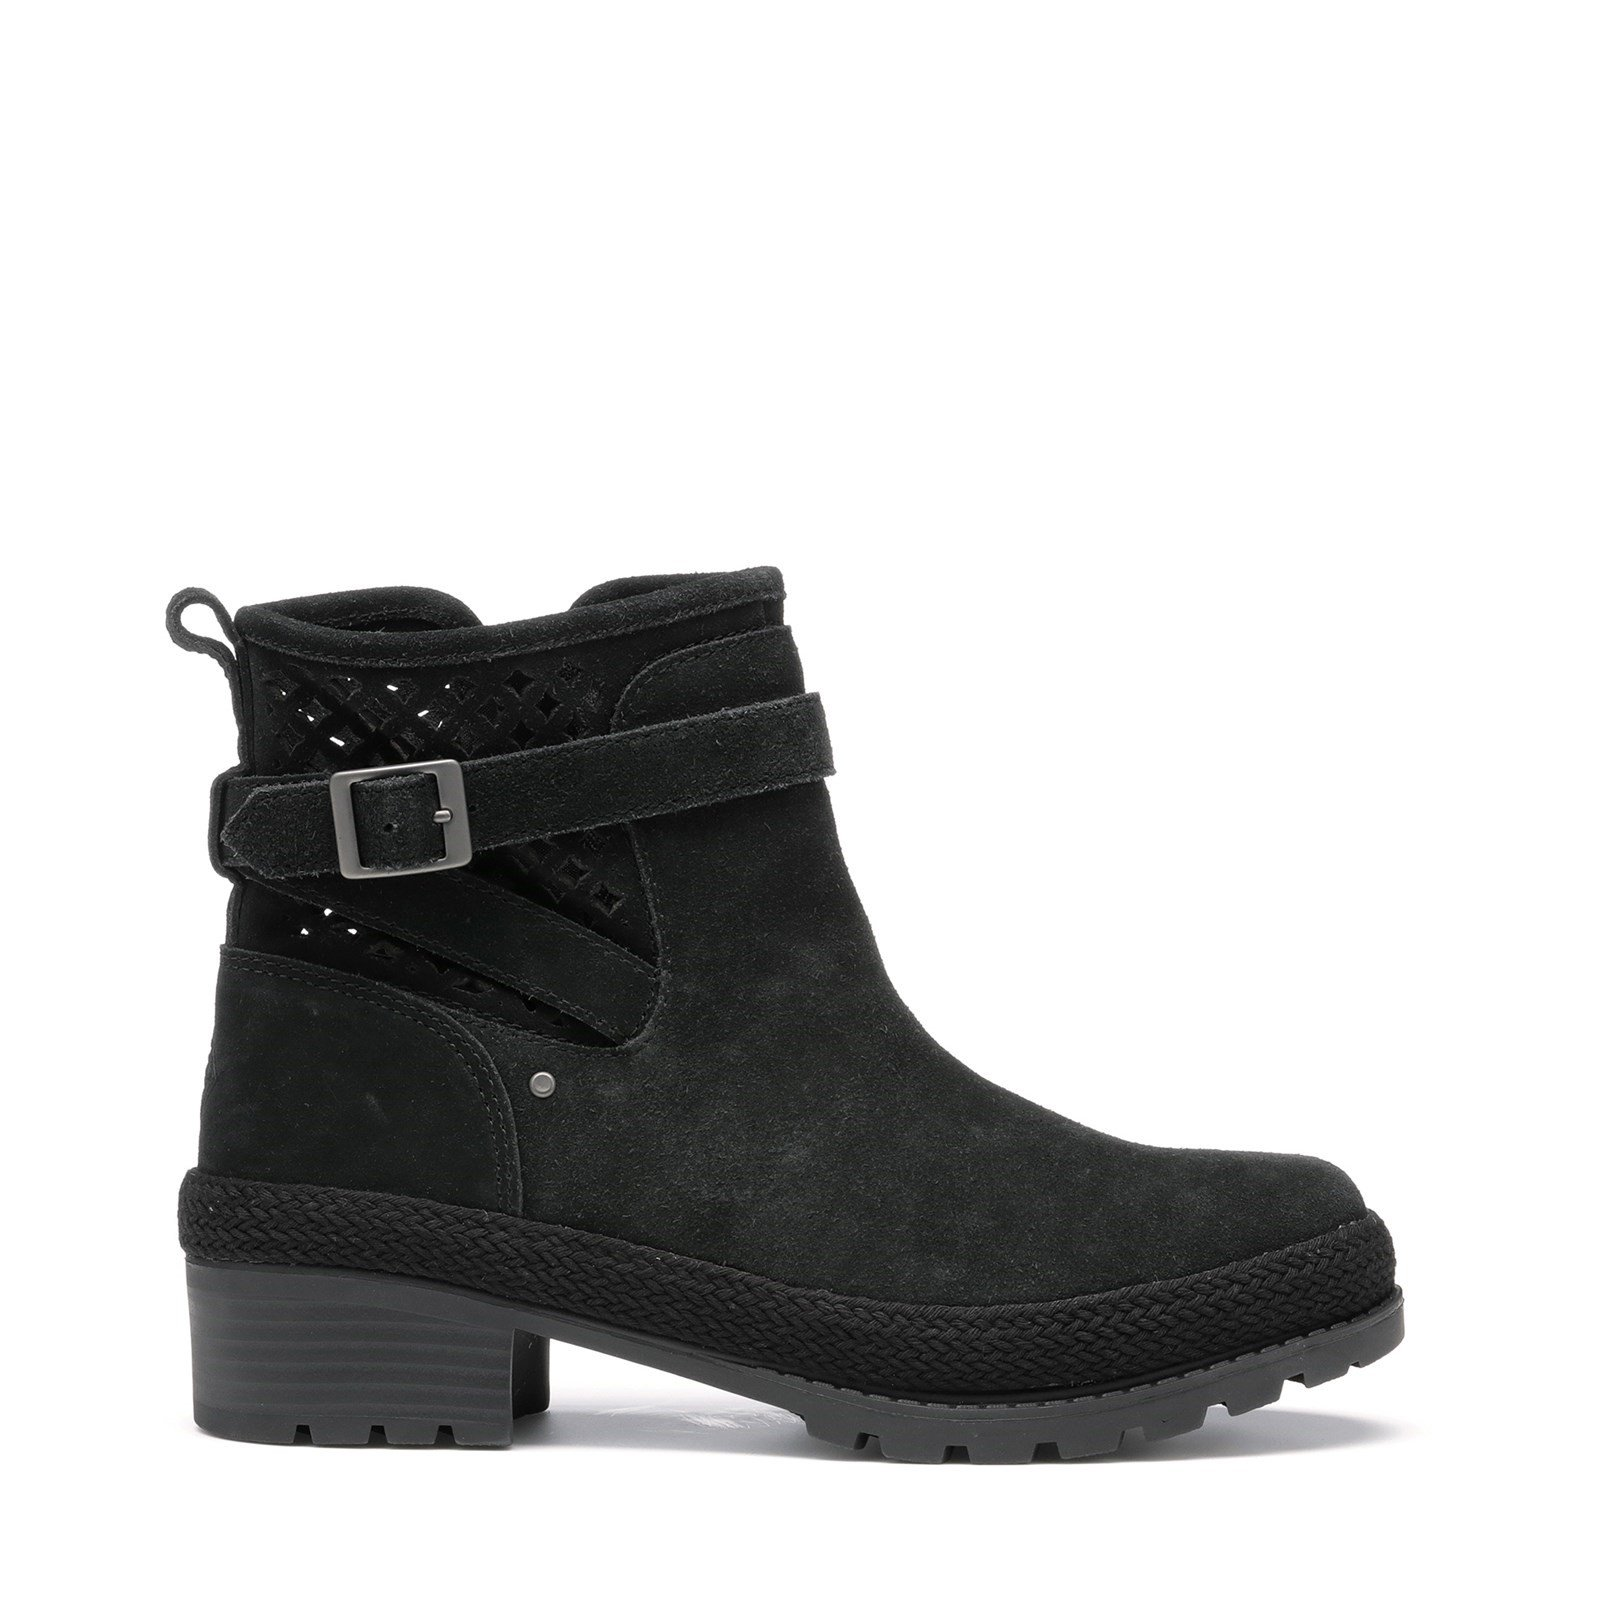 Muck Boots Women's Liberty Perforated Leather Boots Various Colours 31814 - Black 3